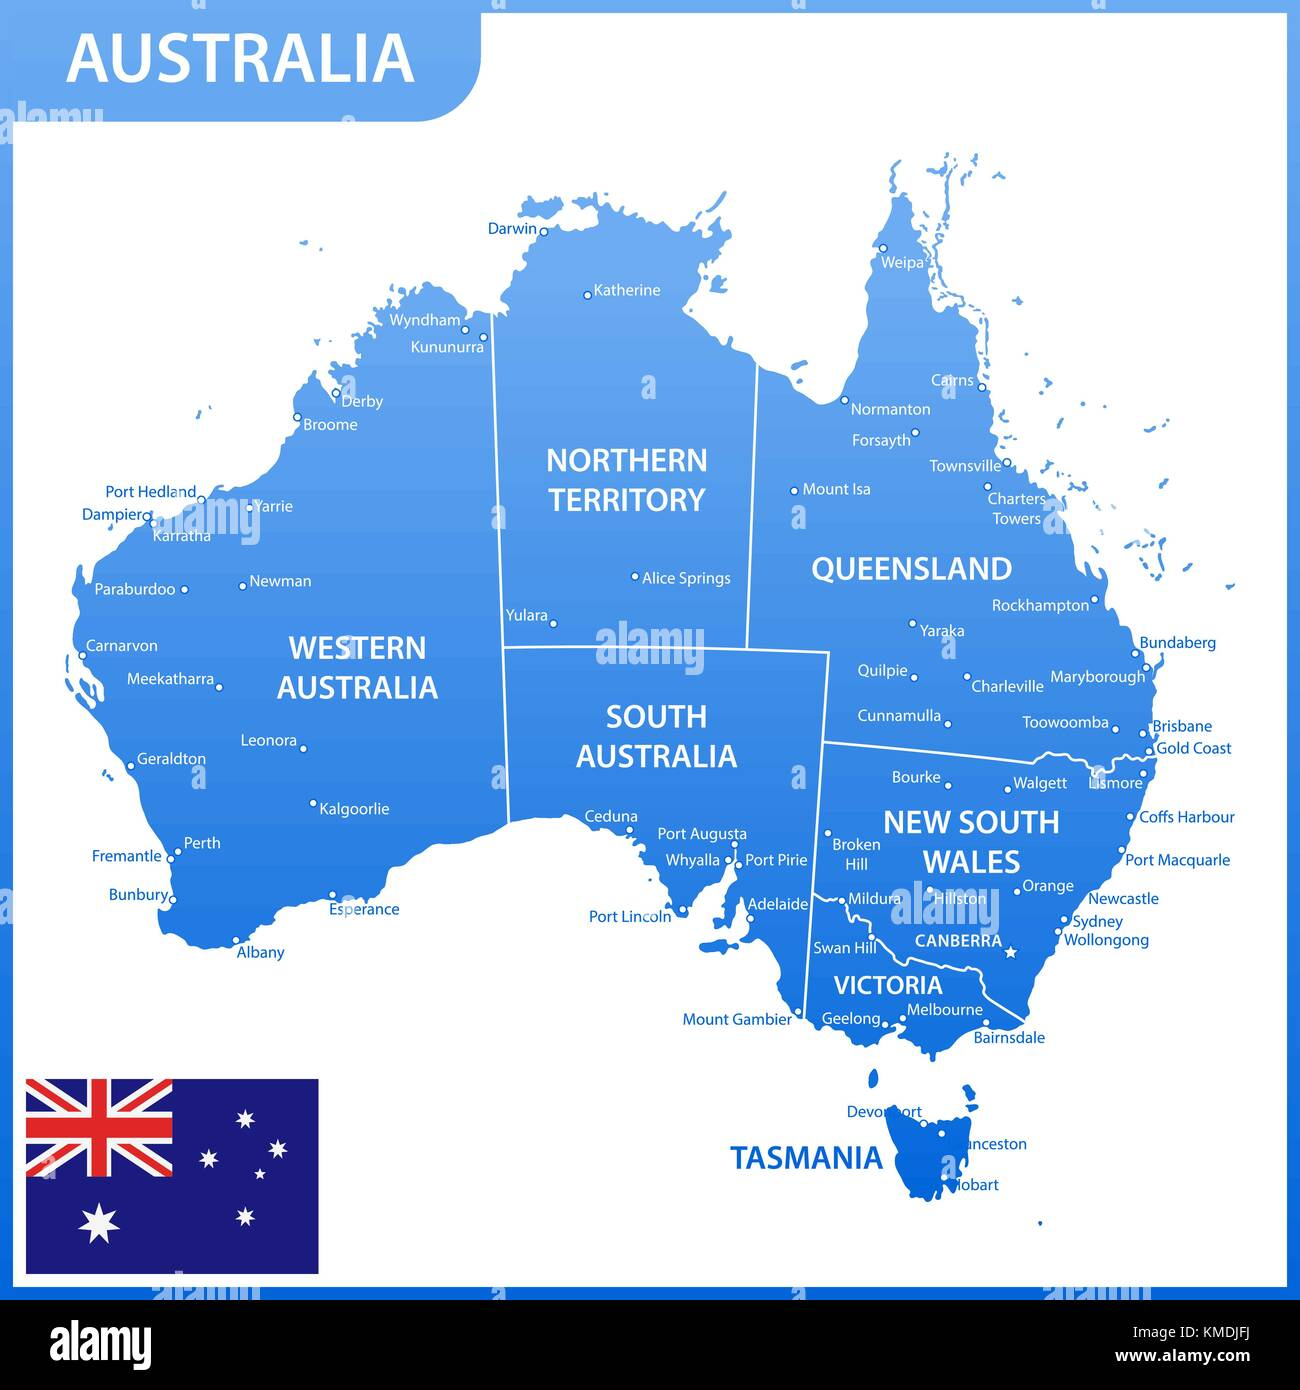 Map Of Australia With States And Capitals.The Detailed Map Of The Australia With Regions Or States And Cities